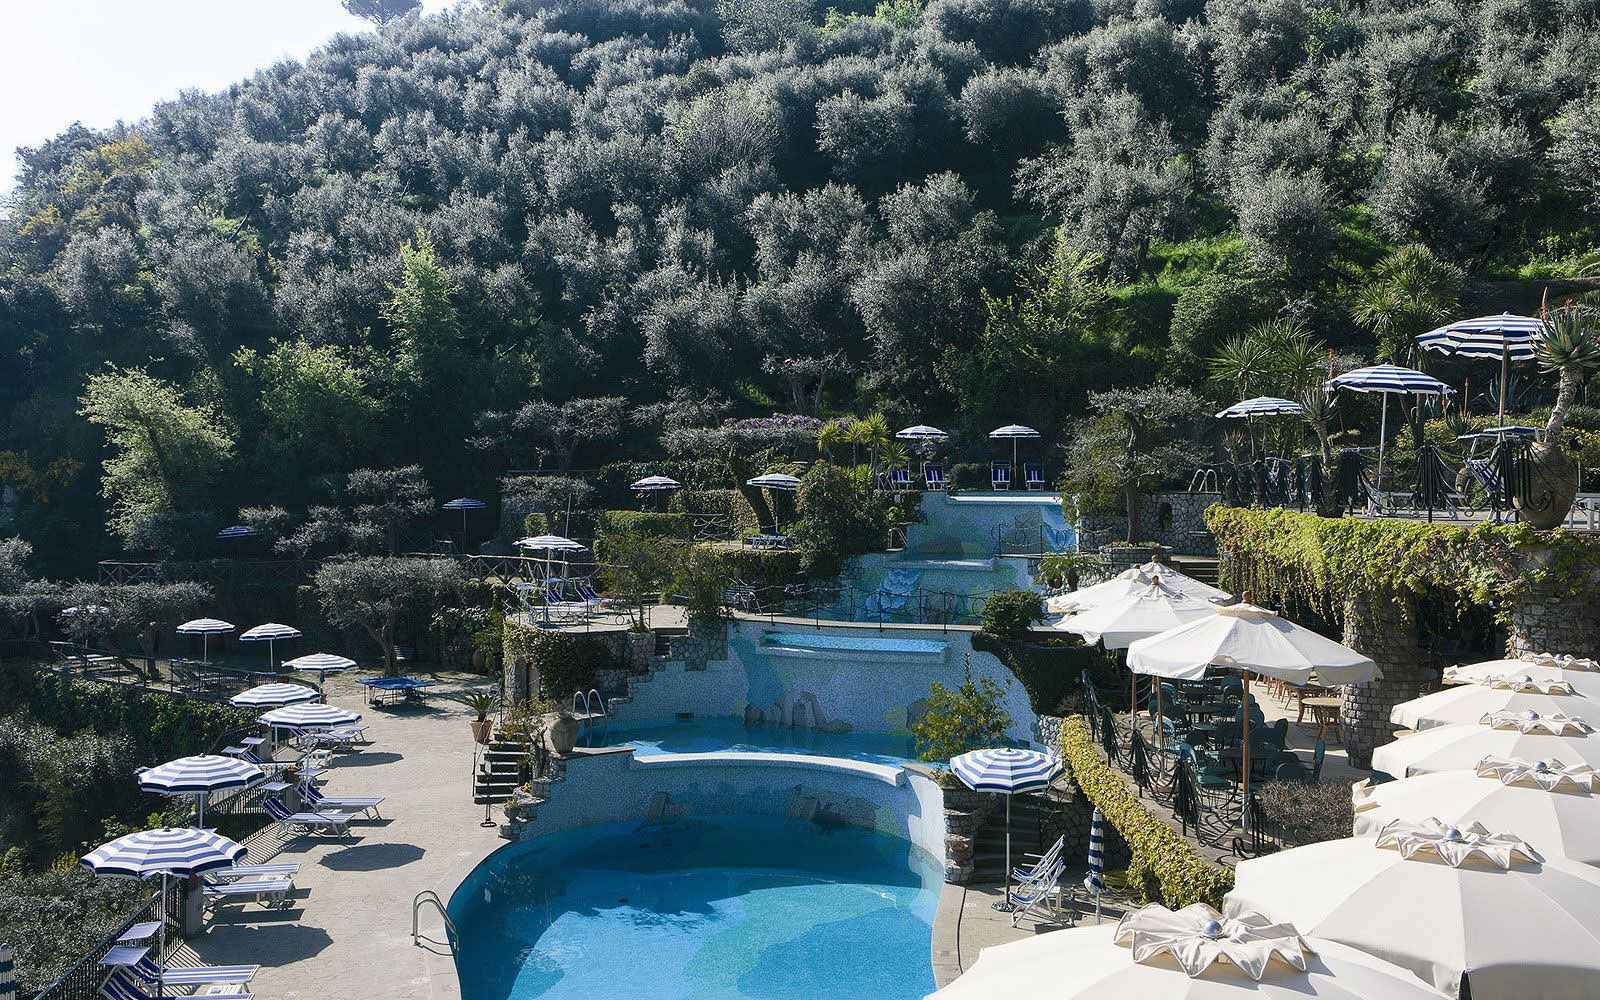 Cascading swimming pool at the Grand Hotel Capodimonte